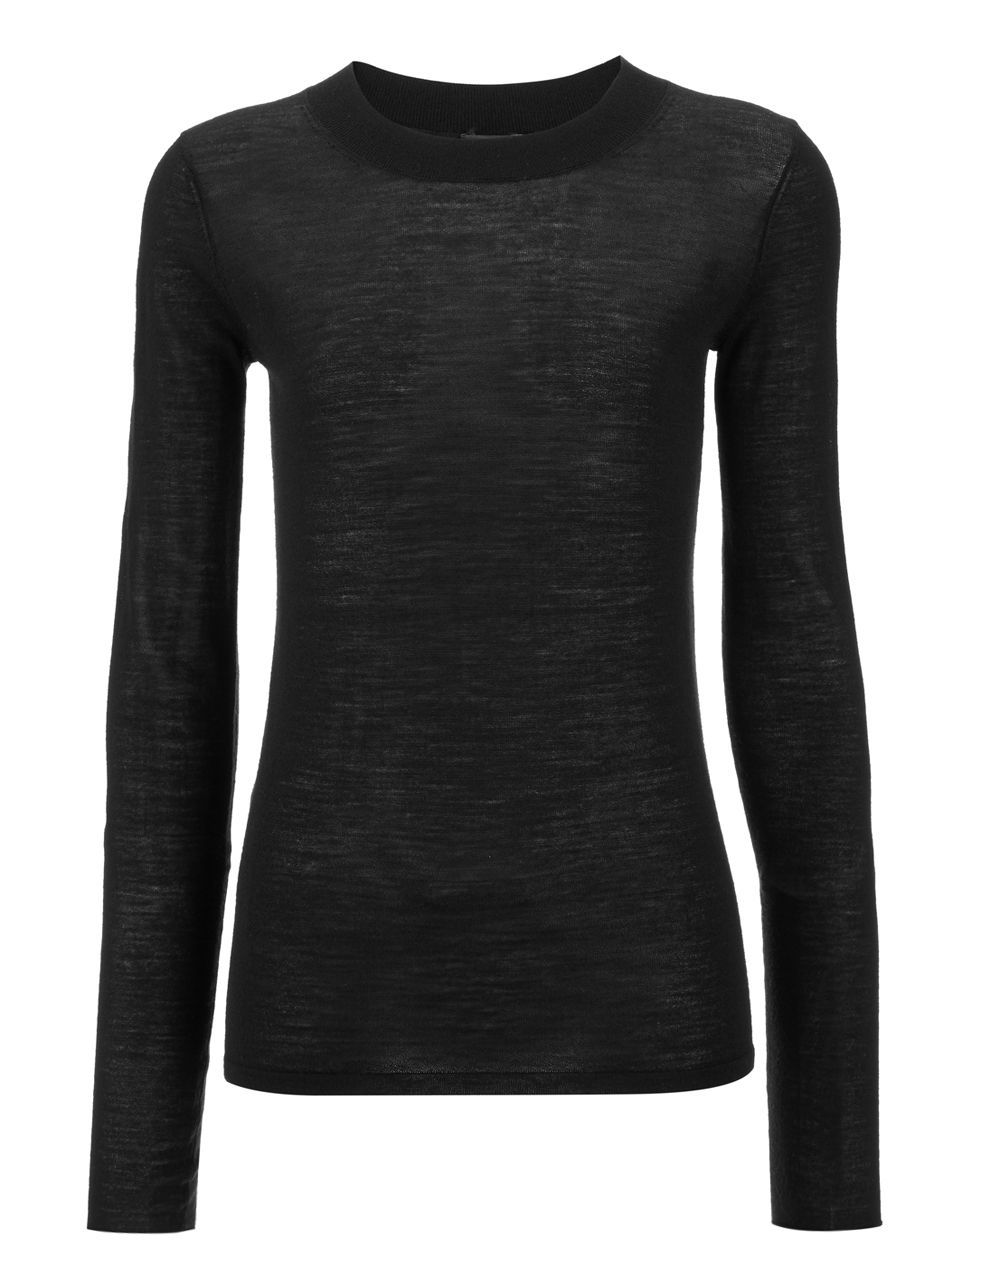 Transparent Knit Top In Black - neckline: round neck; pattern: plain; style: standard; predominant colour: black; occasions: casual, work, creative work; length: standard; fibres: wool - mix; fit: slim fit; sleeve length: long sleeve; sleeve style: standard; texture group: knits/crochet; pattern type: knitted - fine stitch; season: a/w 2015; wardrobe: basic